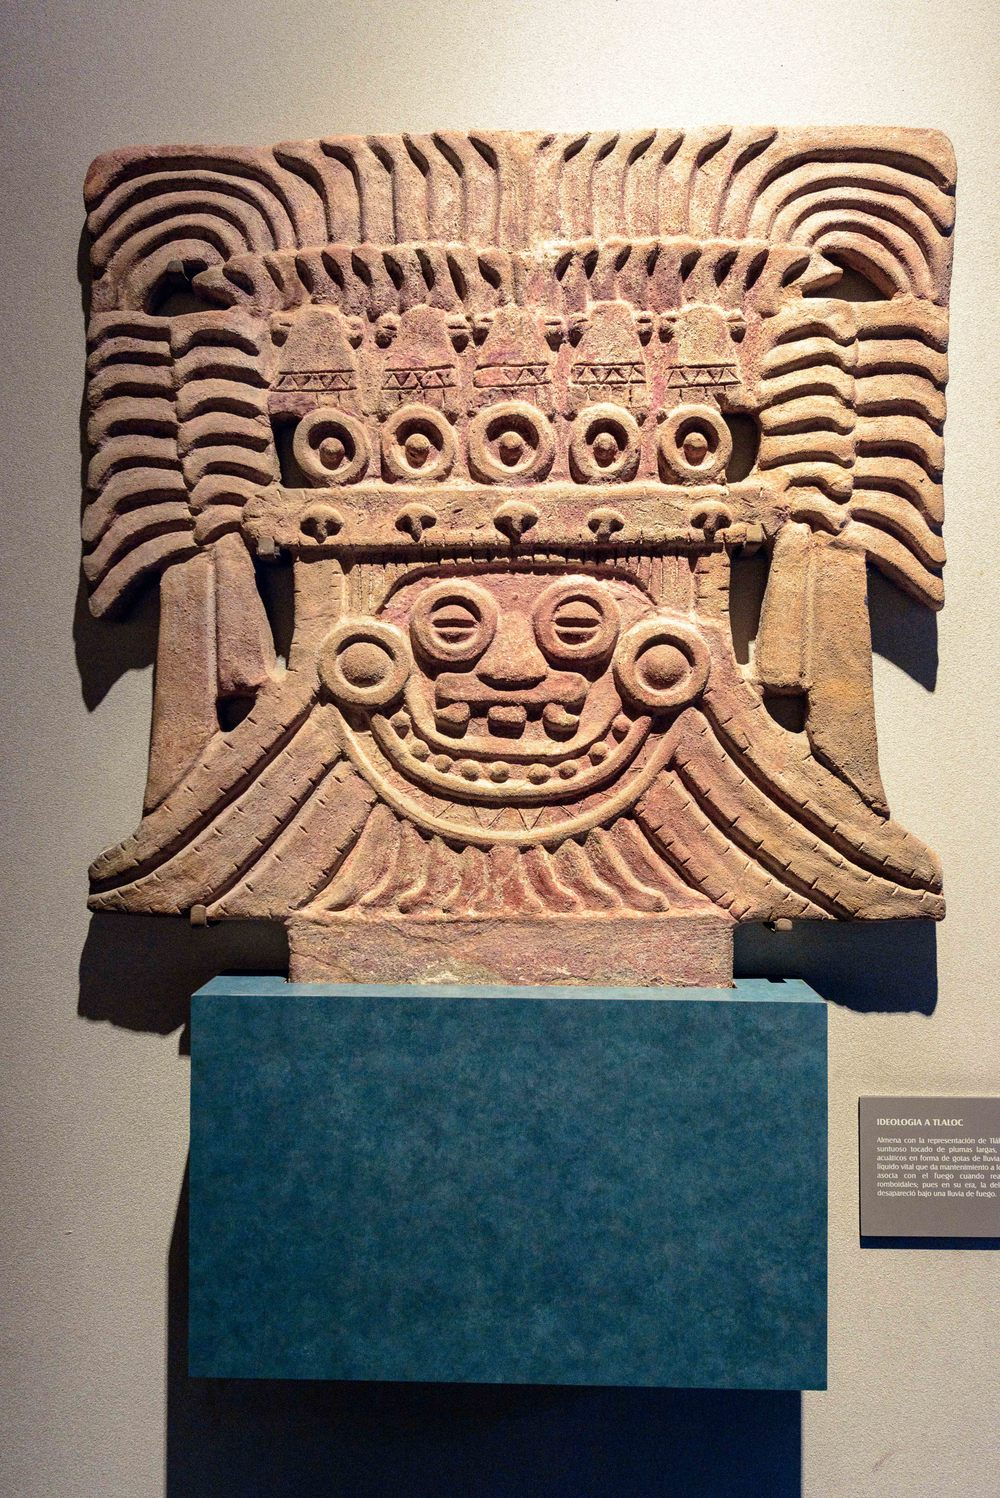 Tlaloc was an important deity in Aztec religion; a god of rain, fertility, and water.